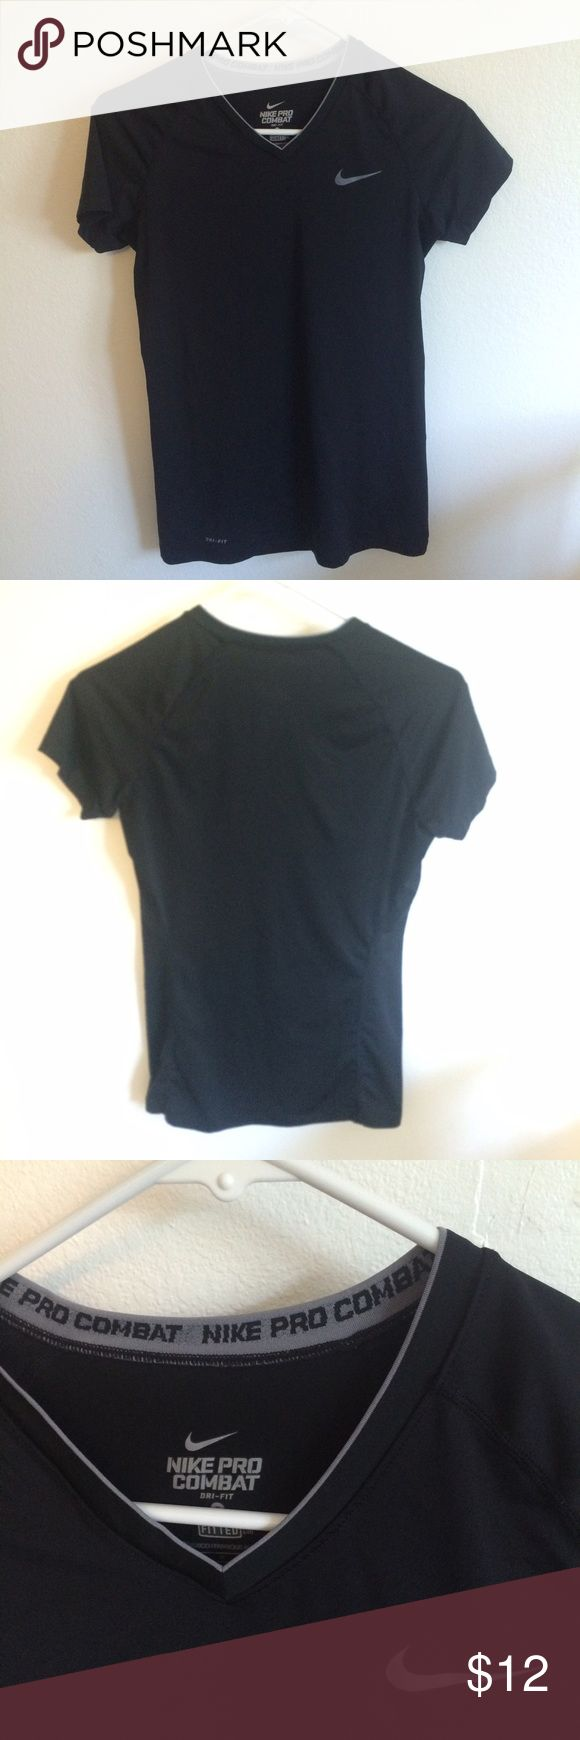 Nike Dri-Fit Black Nike Pro Combat short sleeved Dri-Fit. Fitted v-neck. Worn maybe 3 times! Nike Tops Tees - Short Sleeve